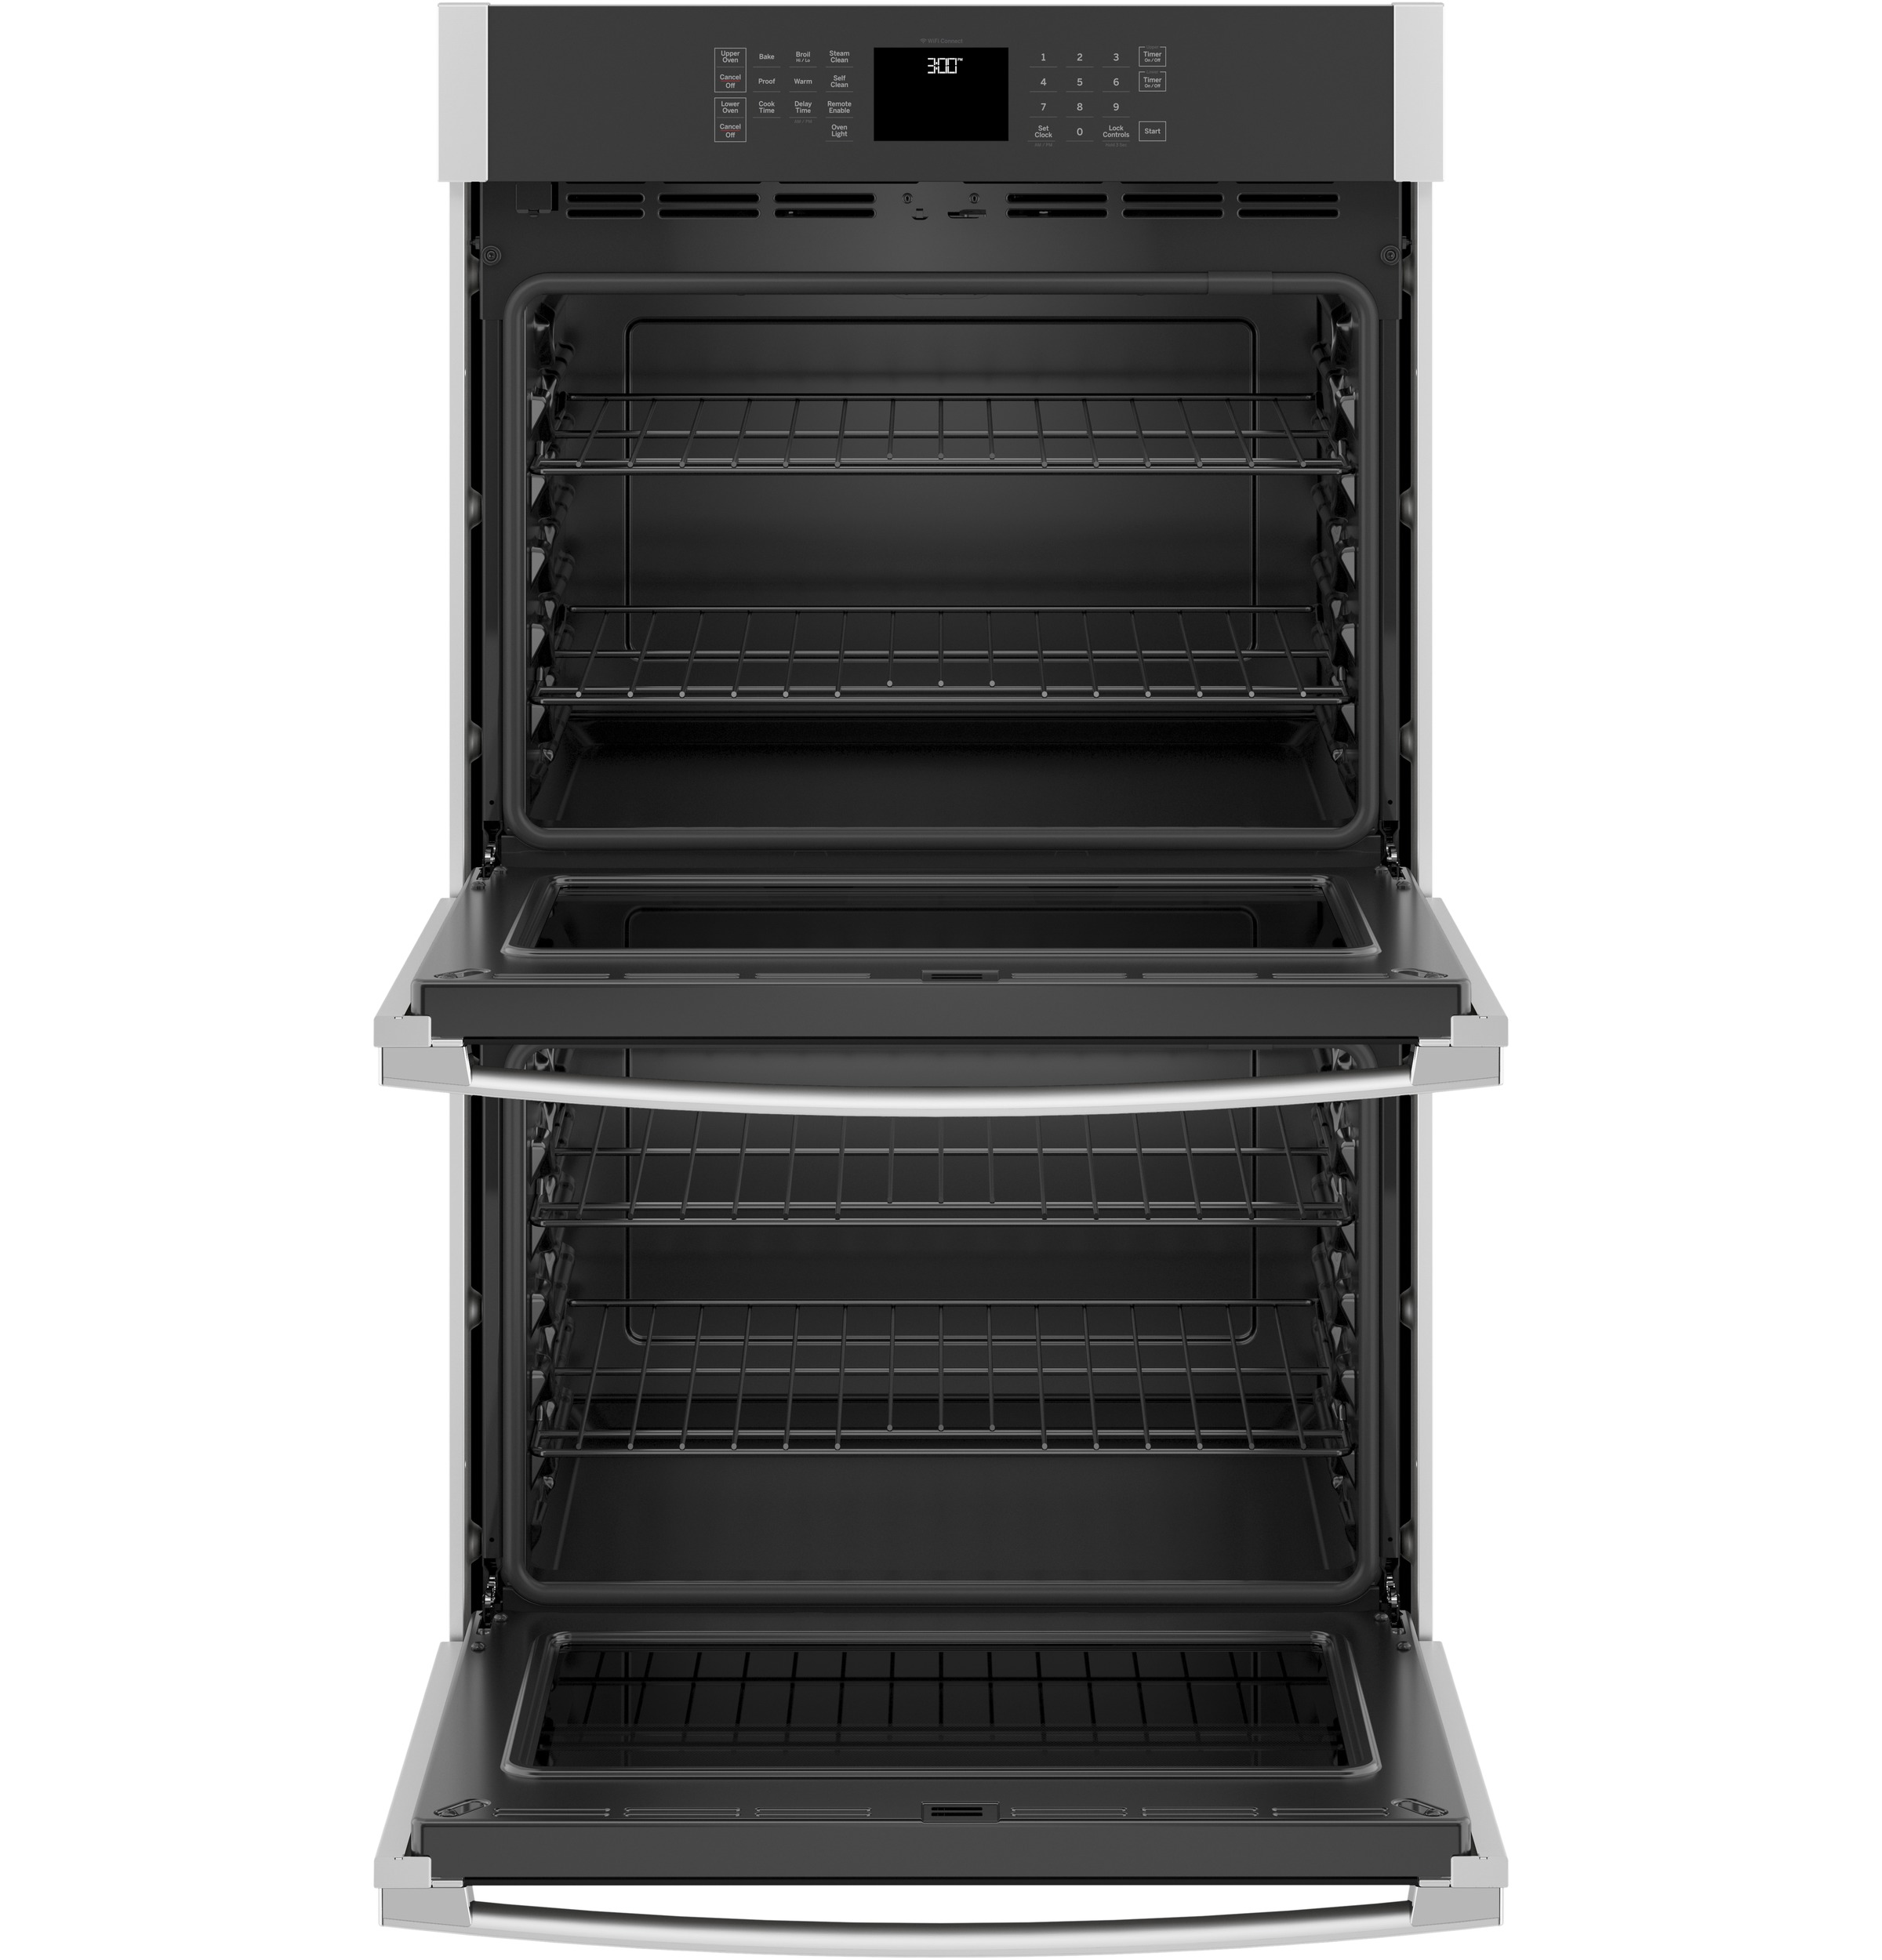 "Model: JTD3000SNSS | GE GE® 30"" Smart Built-In Self-Clean Double Wall Oven with Never-Scrub Racks"